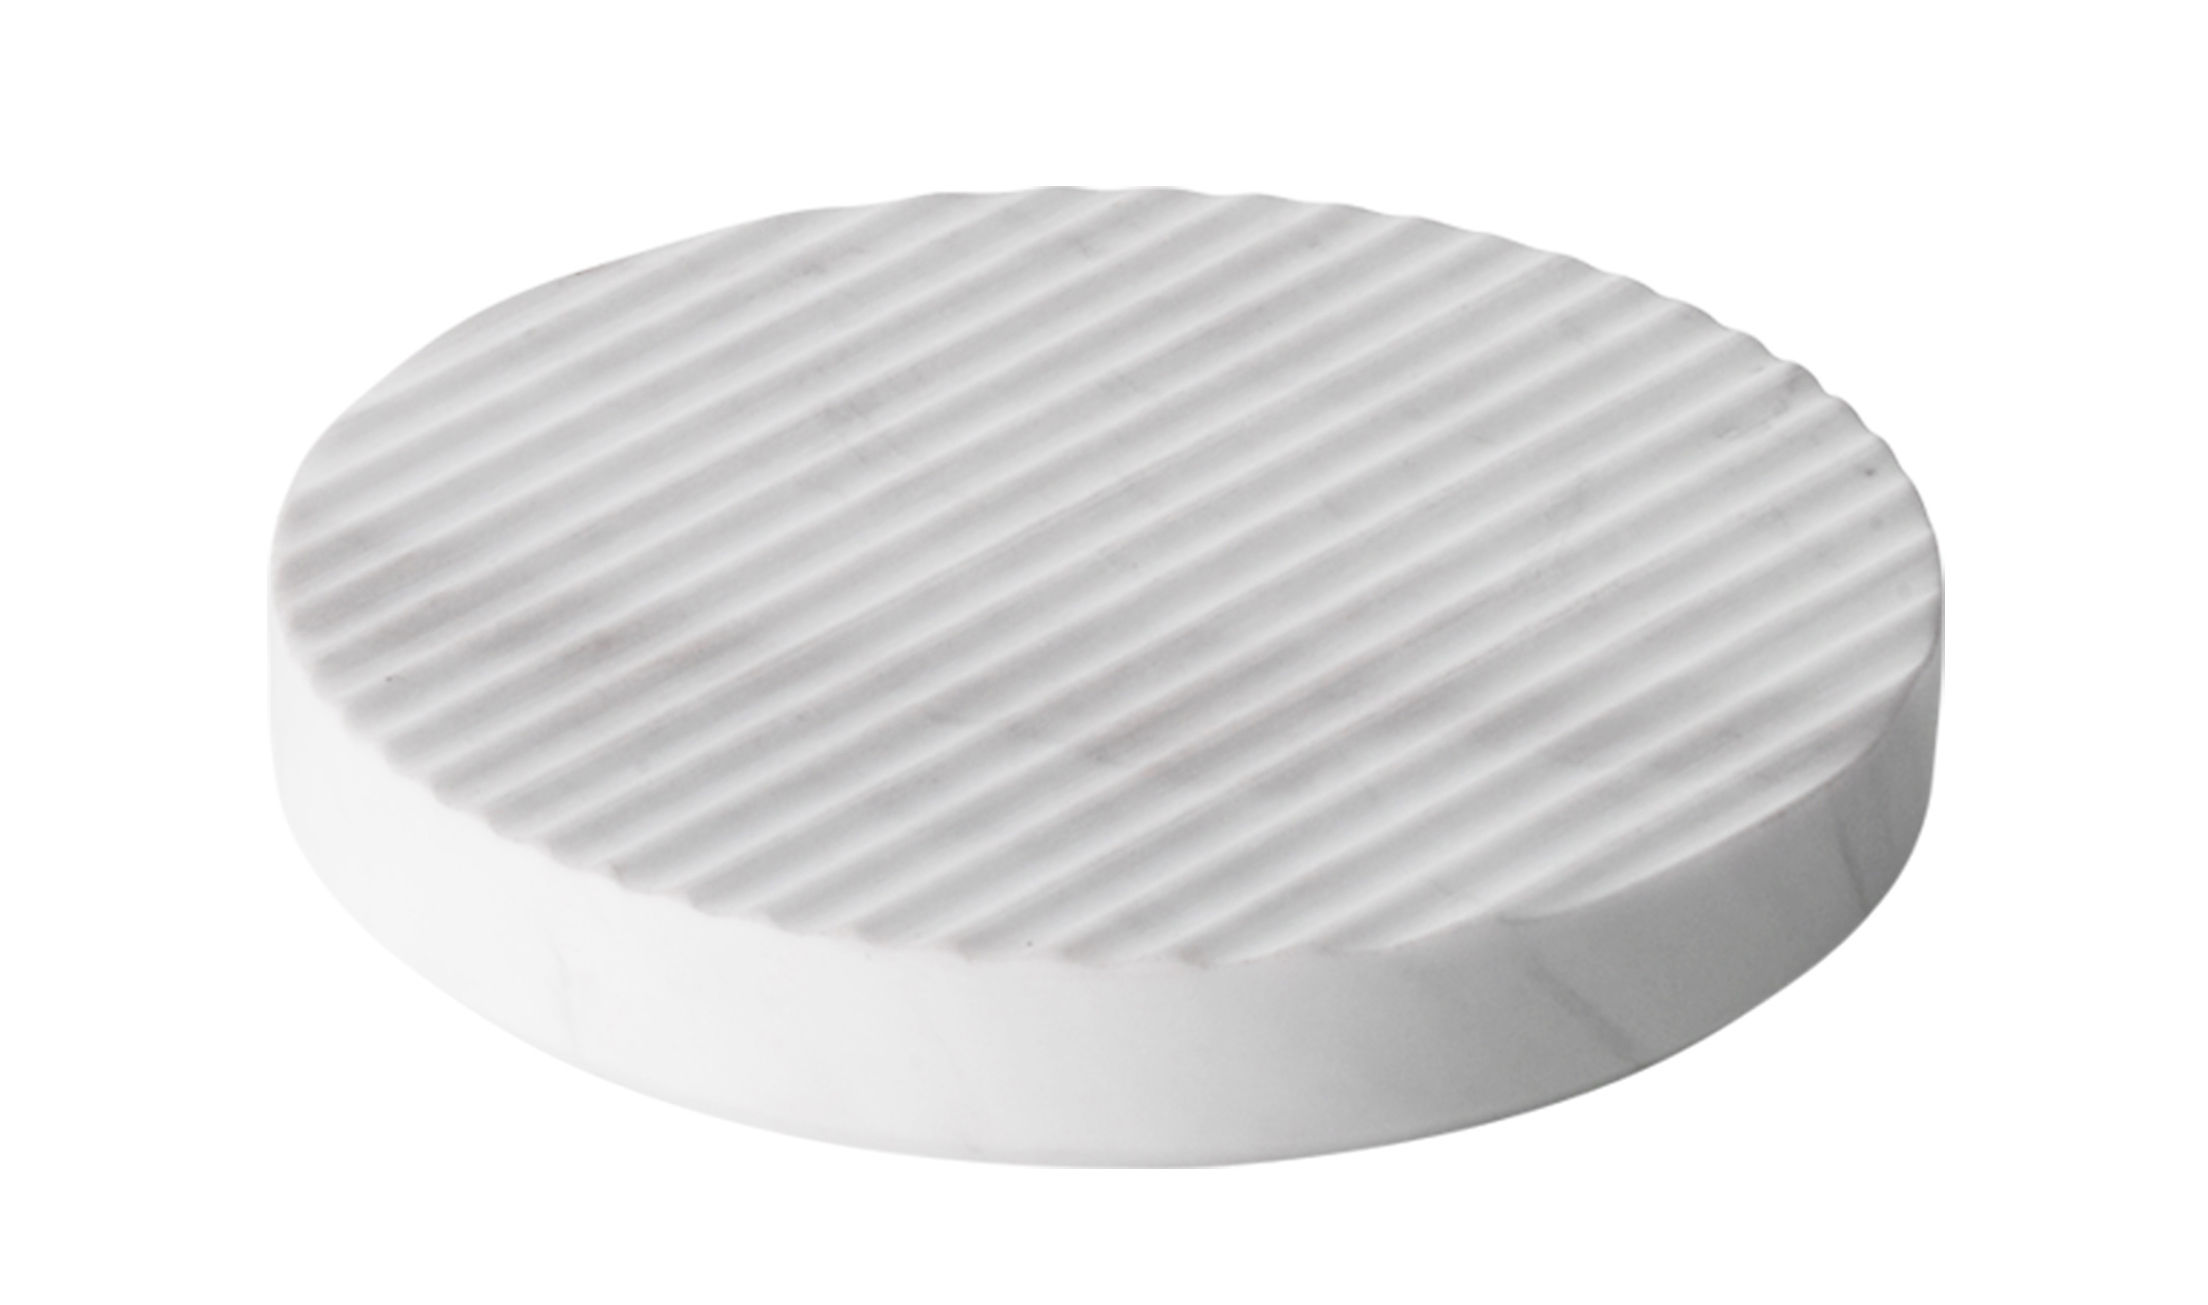 Tableware - Table Mats & Trivets - Groove Tablemat - / Small - Ø 16 cm by Muuto - White - Marble